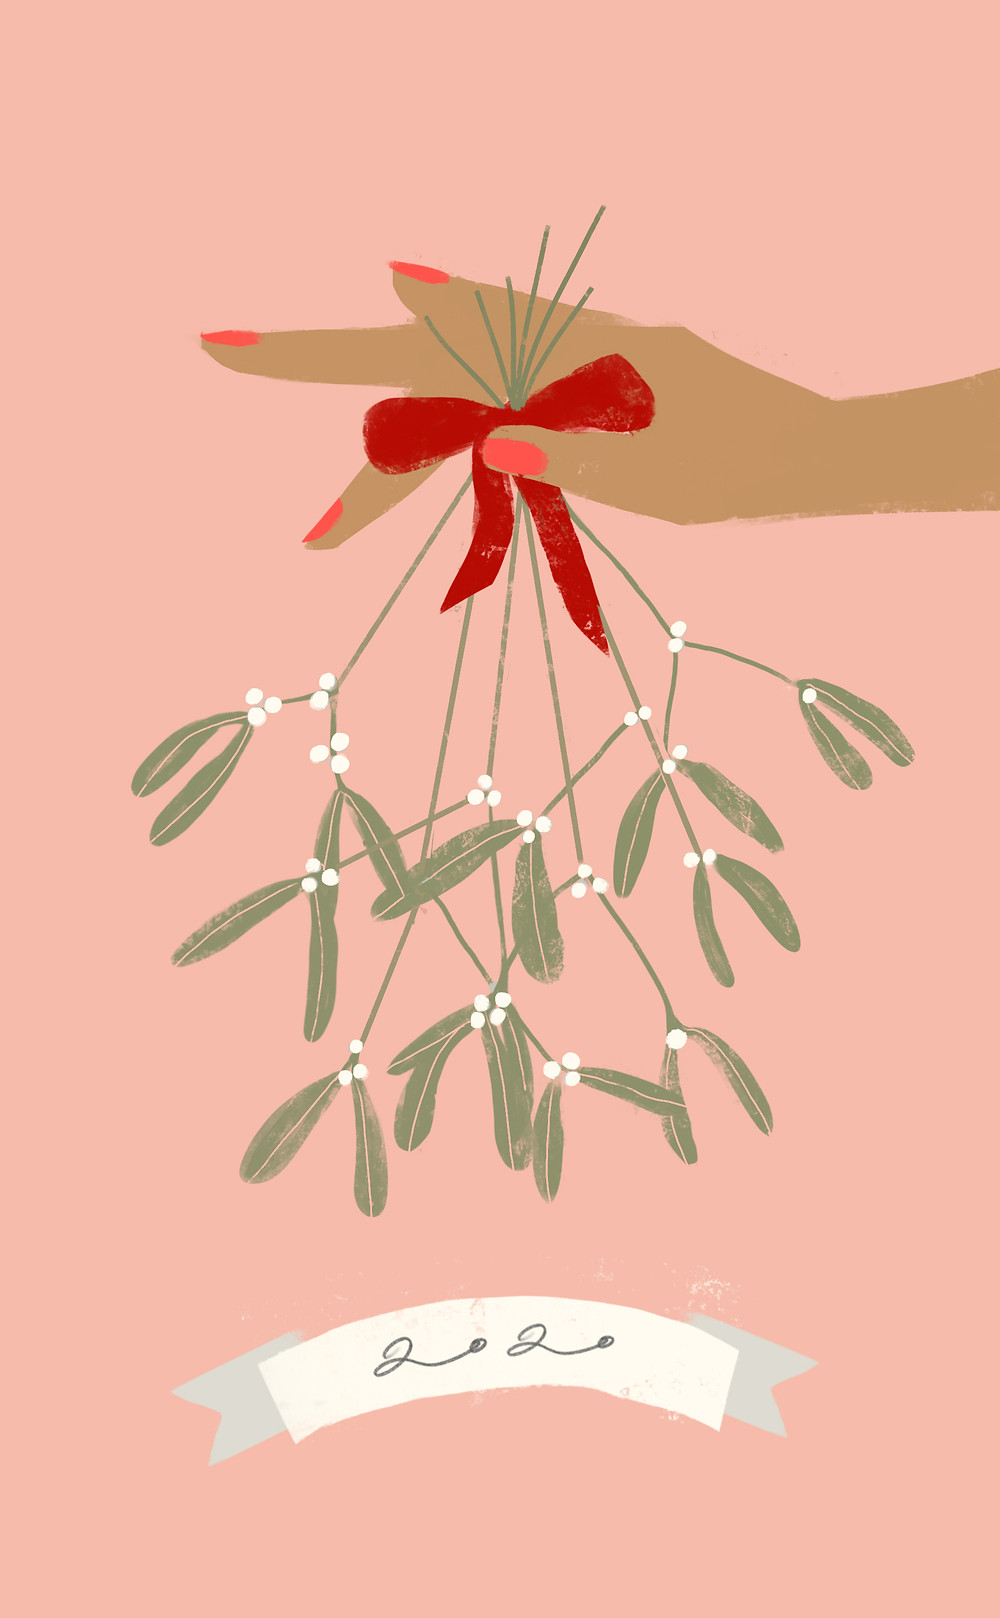 Mistletoe being held over the year 2020